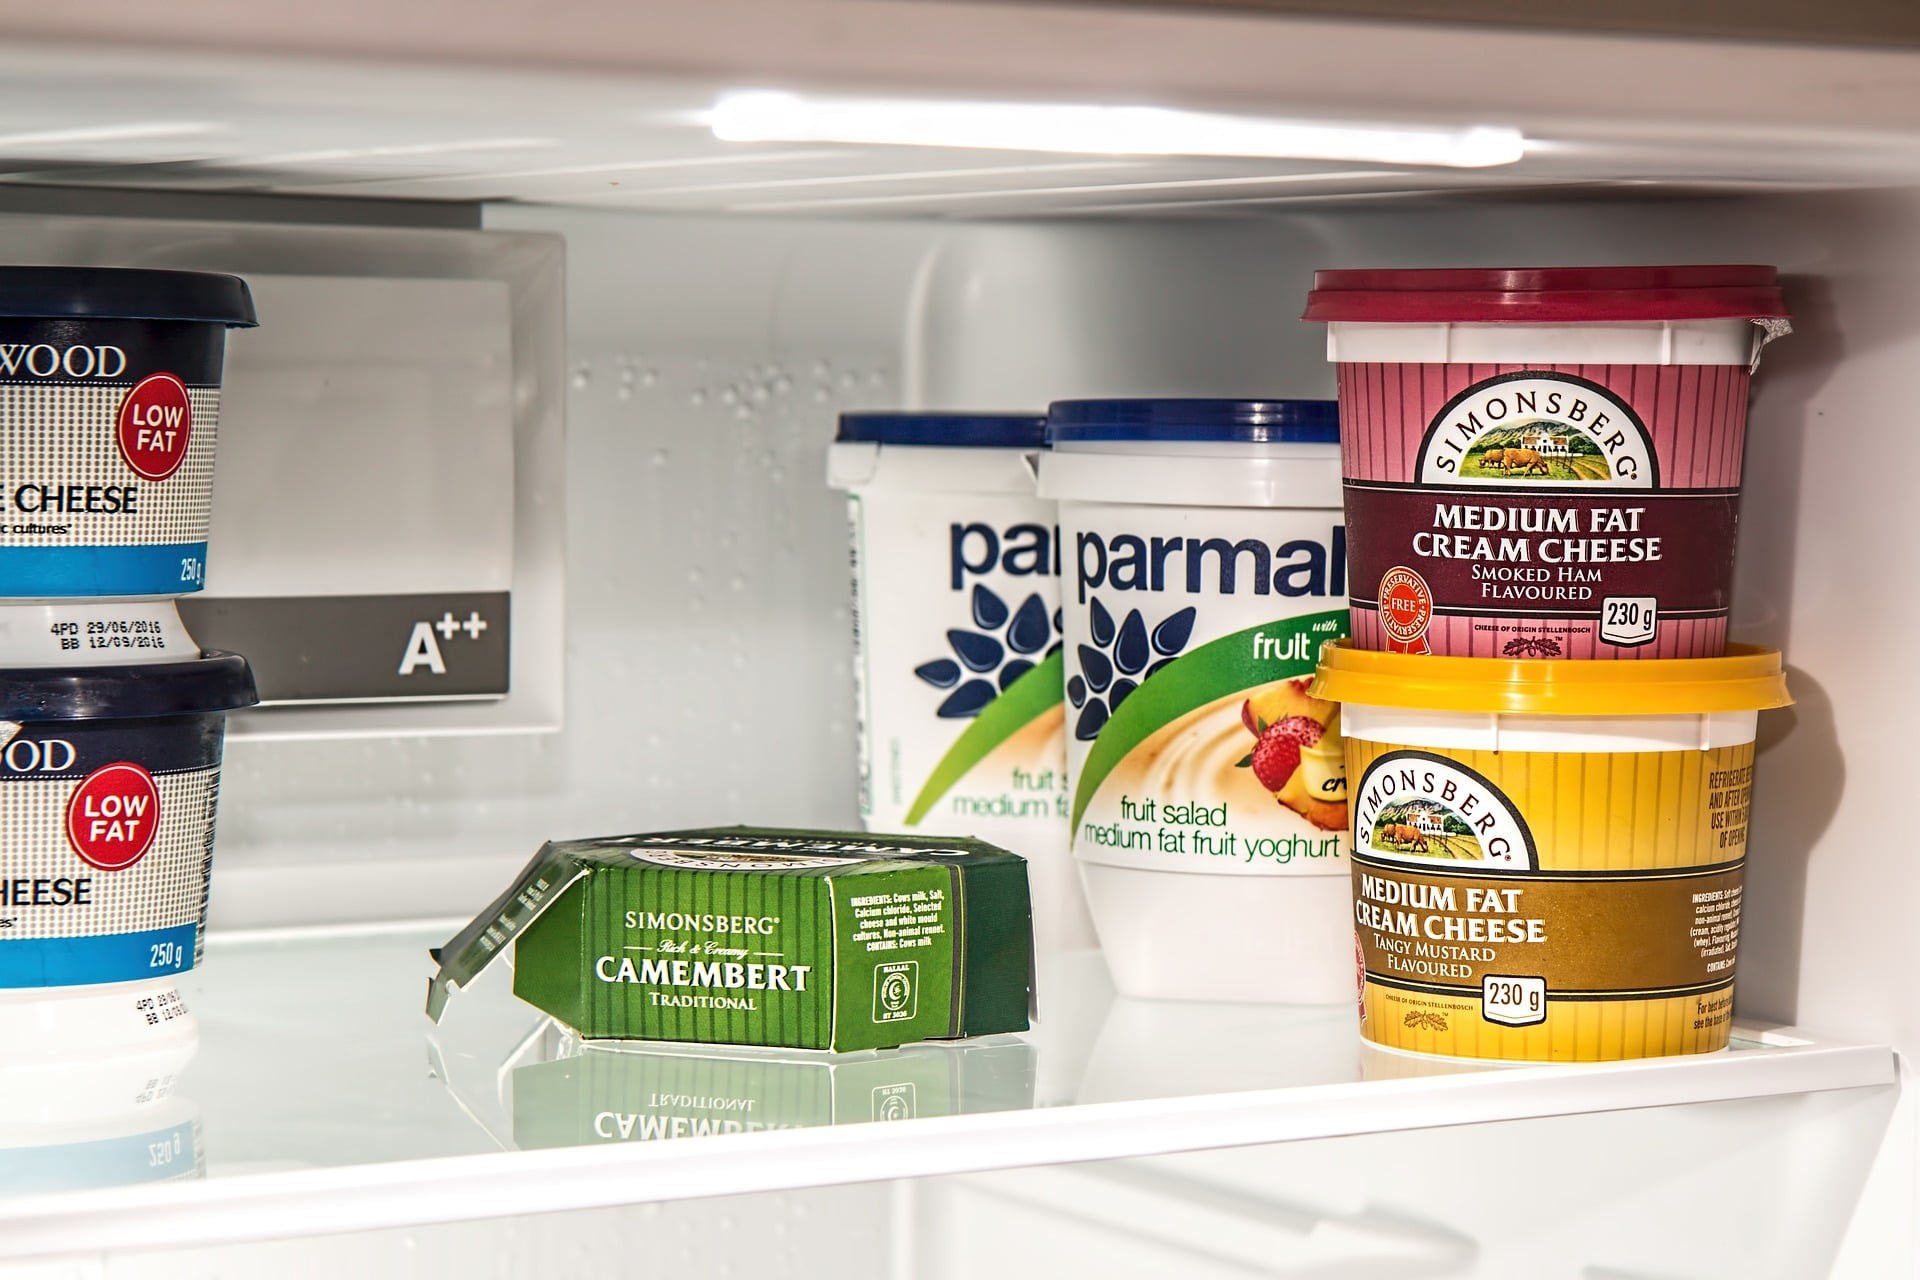 picture of yogurt, cheese, and cream cheese in fridge